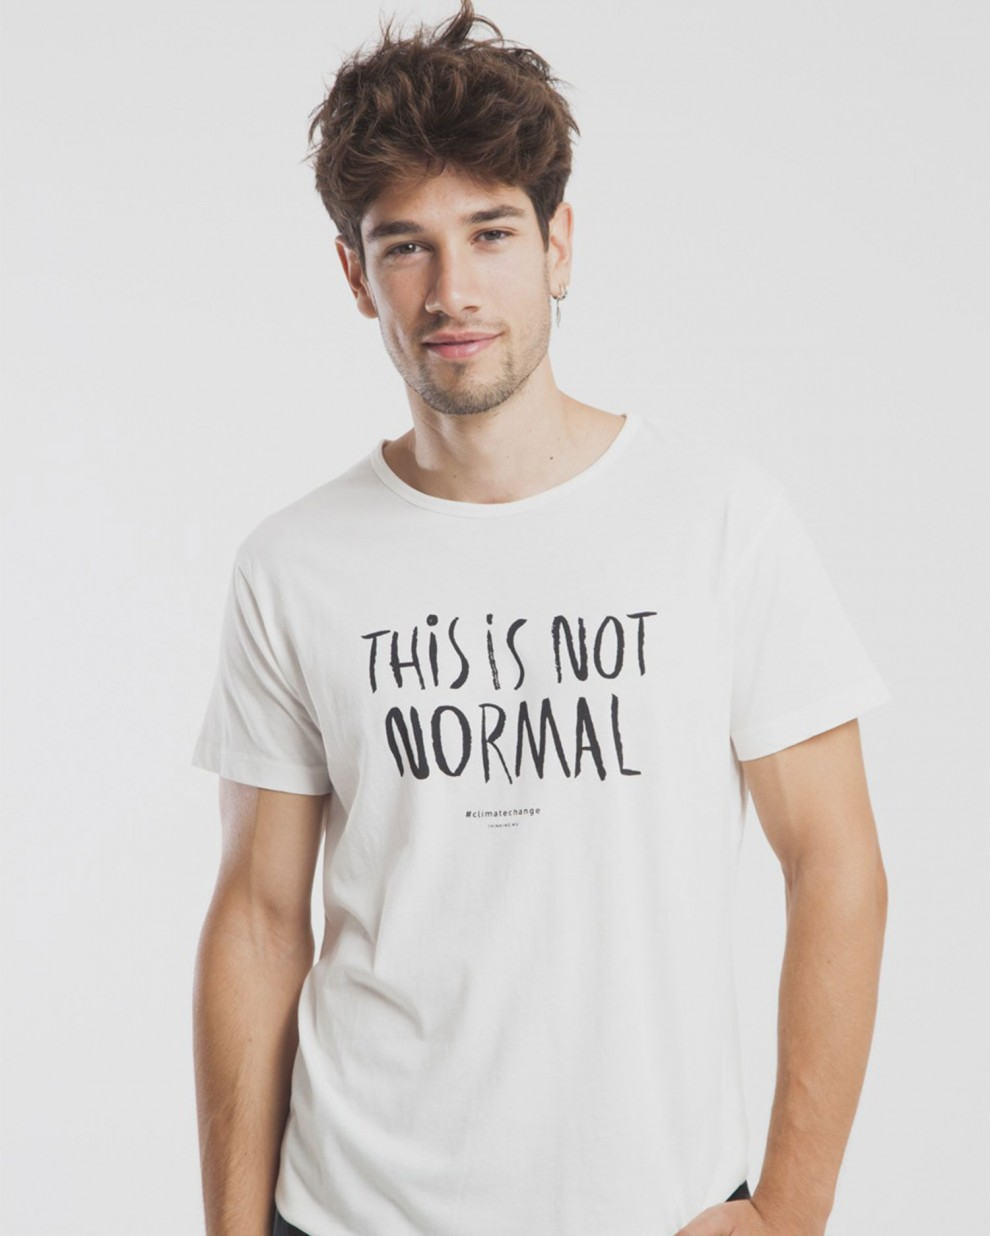 This is not normal Tee